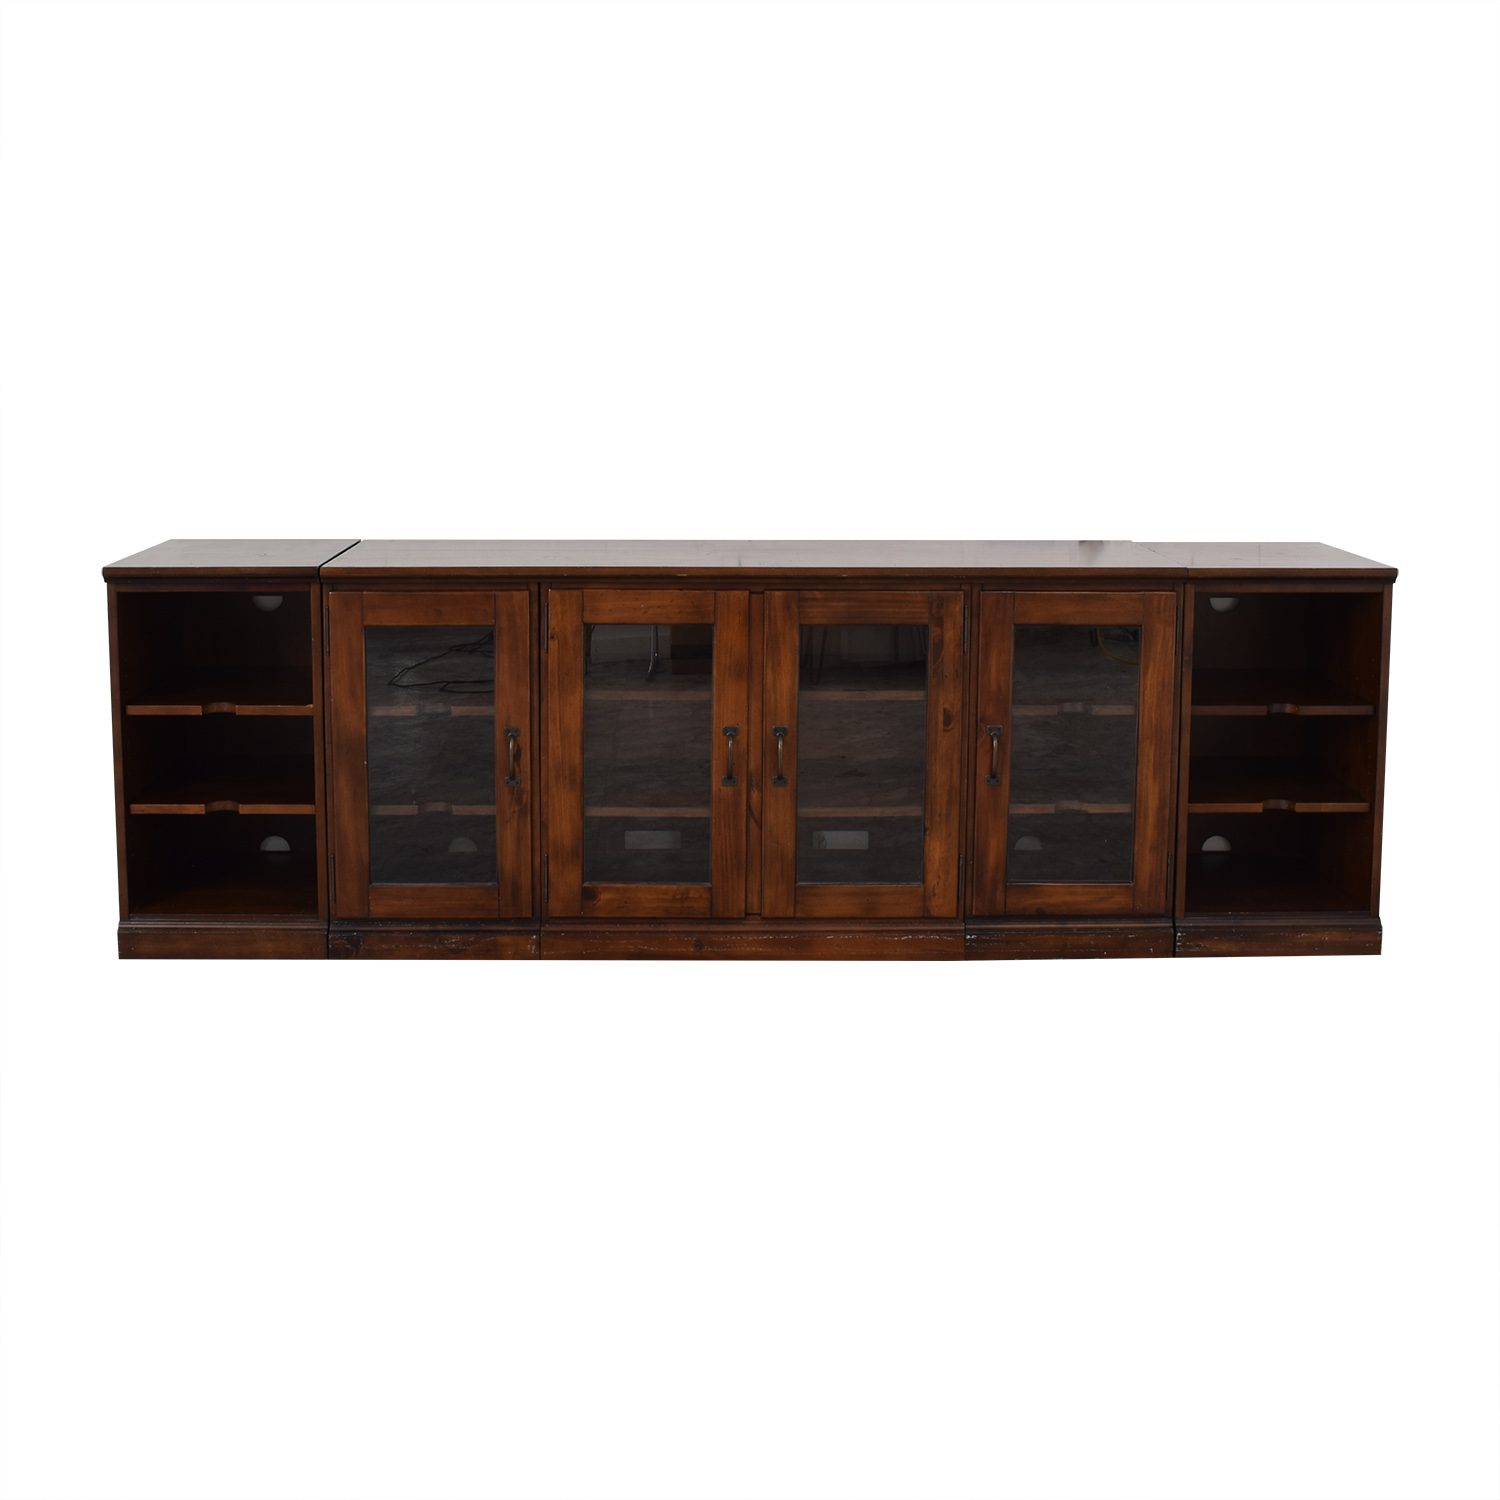 buy Pottery Barn Printer's Glass and Wood Media Unit or Sideboard Pottery Barn Storage